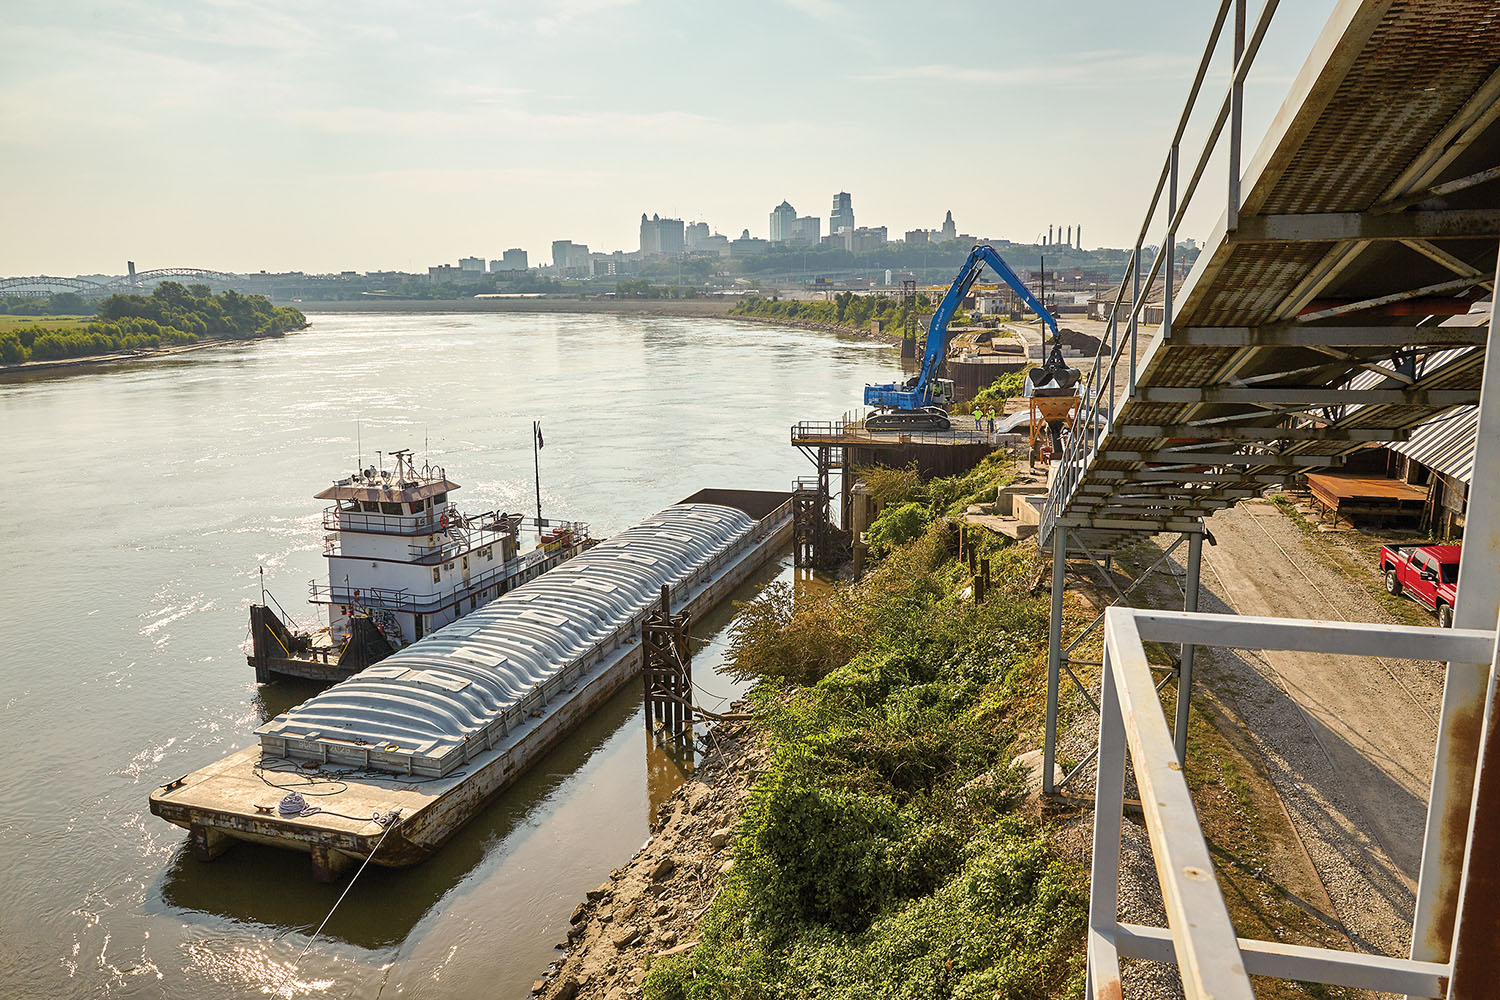 Since the Port of Kansas City reopened in 2015, it has seen double-digit growth in tonnage of cargo passing through it and recently completed a major project with Massman Construction to replace four mooring dolphins. High water levels along the Missouri River and mild weather have led to shippers taking advantage of water transportation during an extended season. Other ports have also reopened. (Photo courtesy of Port of Kansas City)